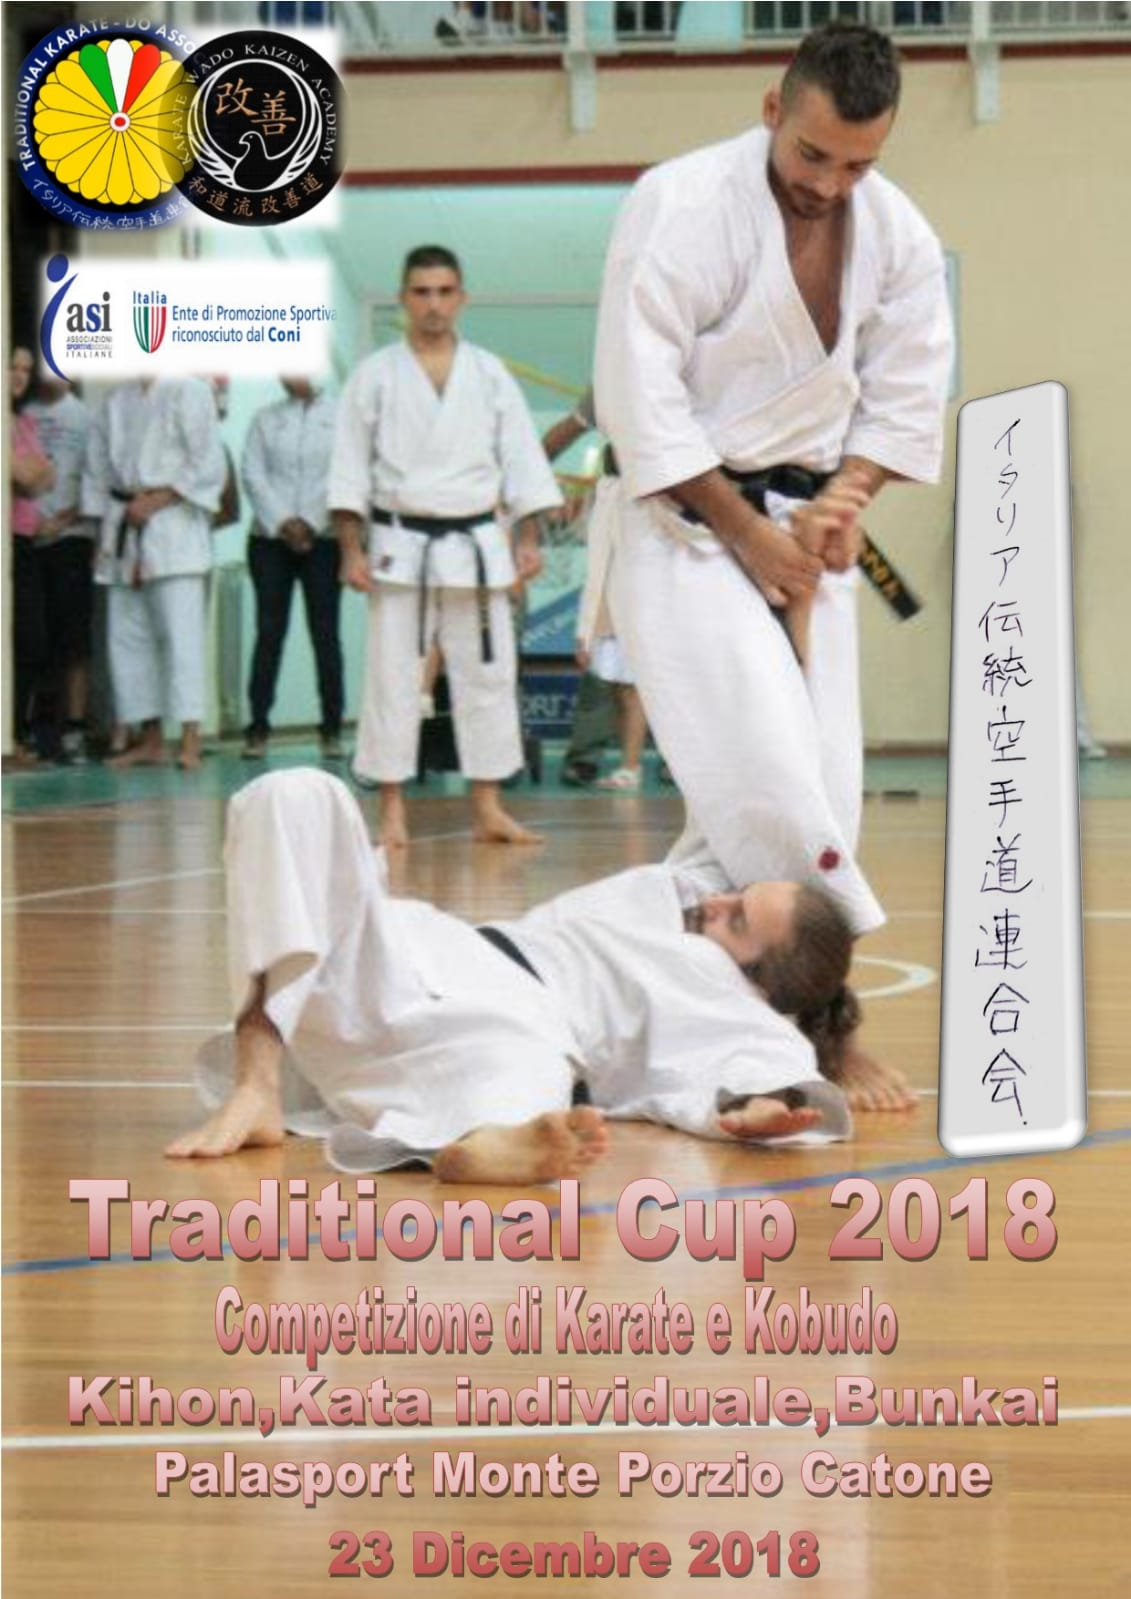 Traditional cup 2018